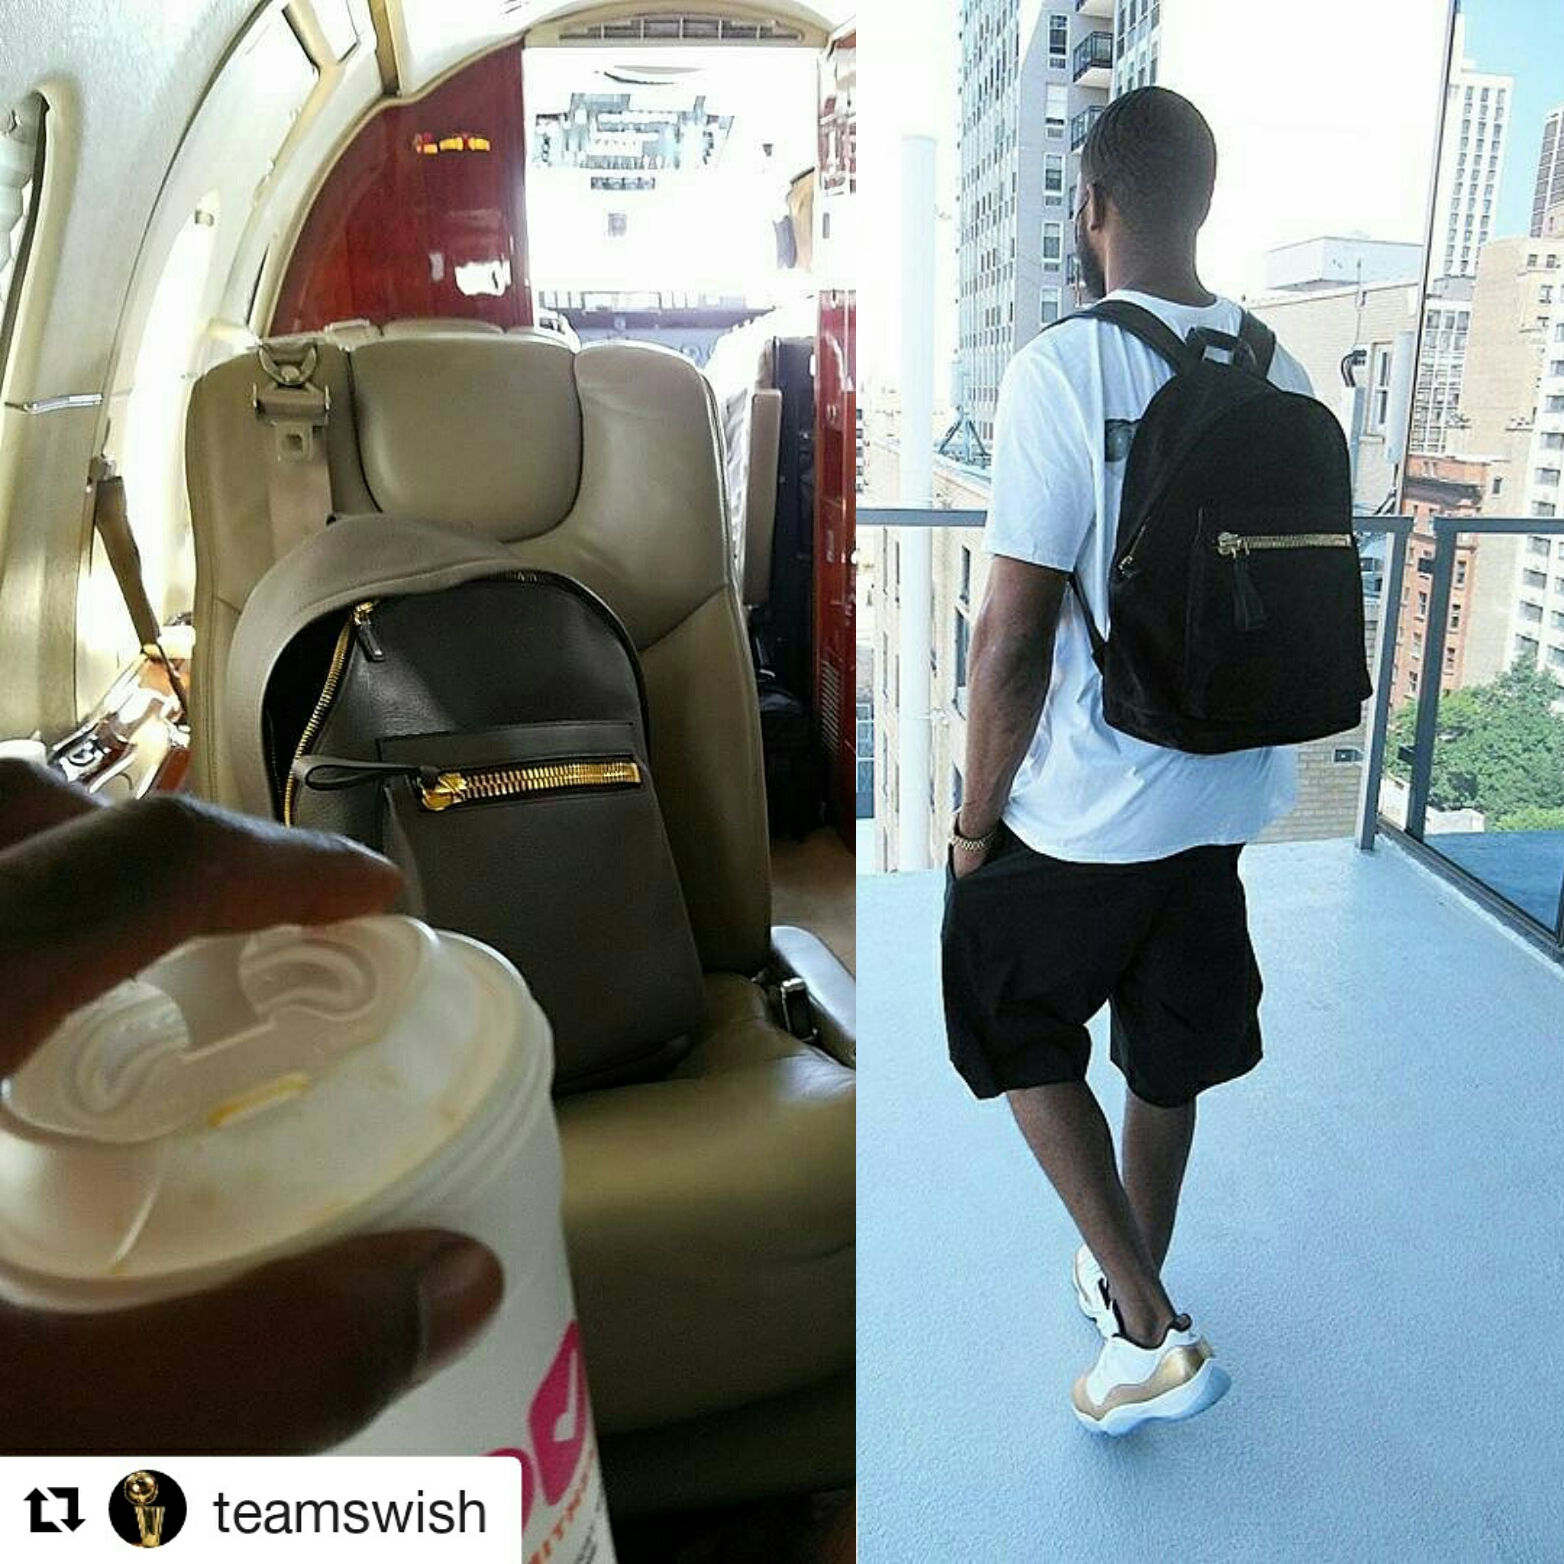 STYLE: Athletes J.R. Smith And Dexter Fowler's Instagram Tom Ford 'Buckley' Zip-Pocket Backpack